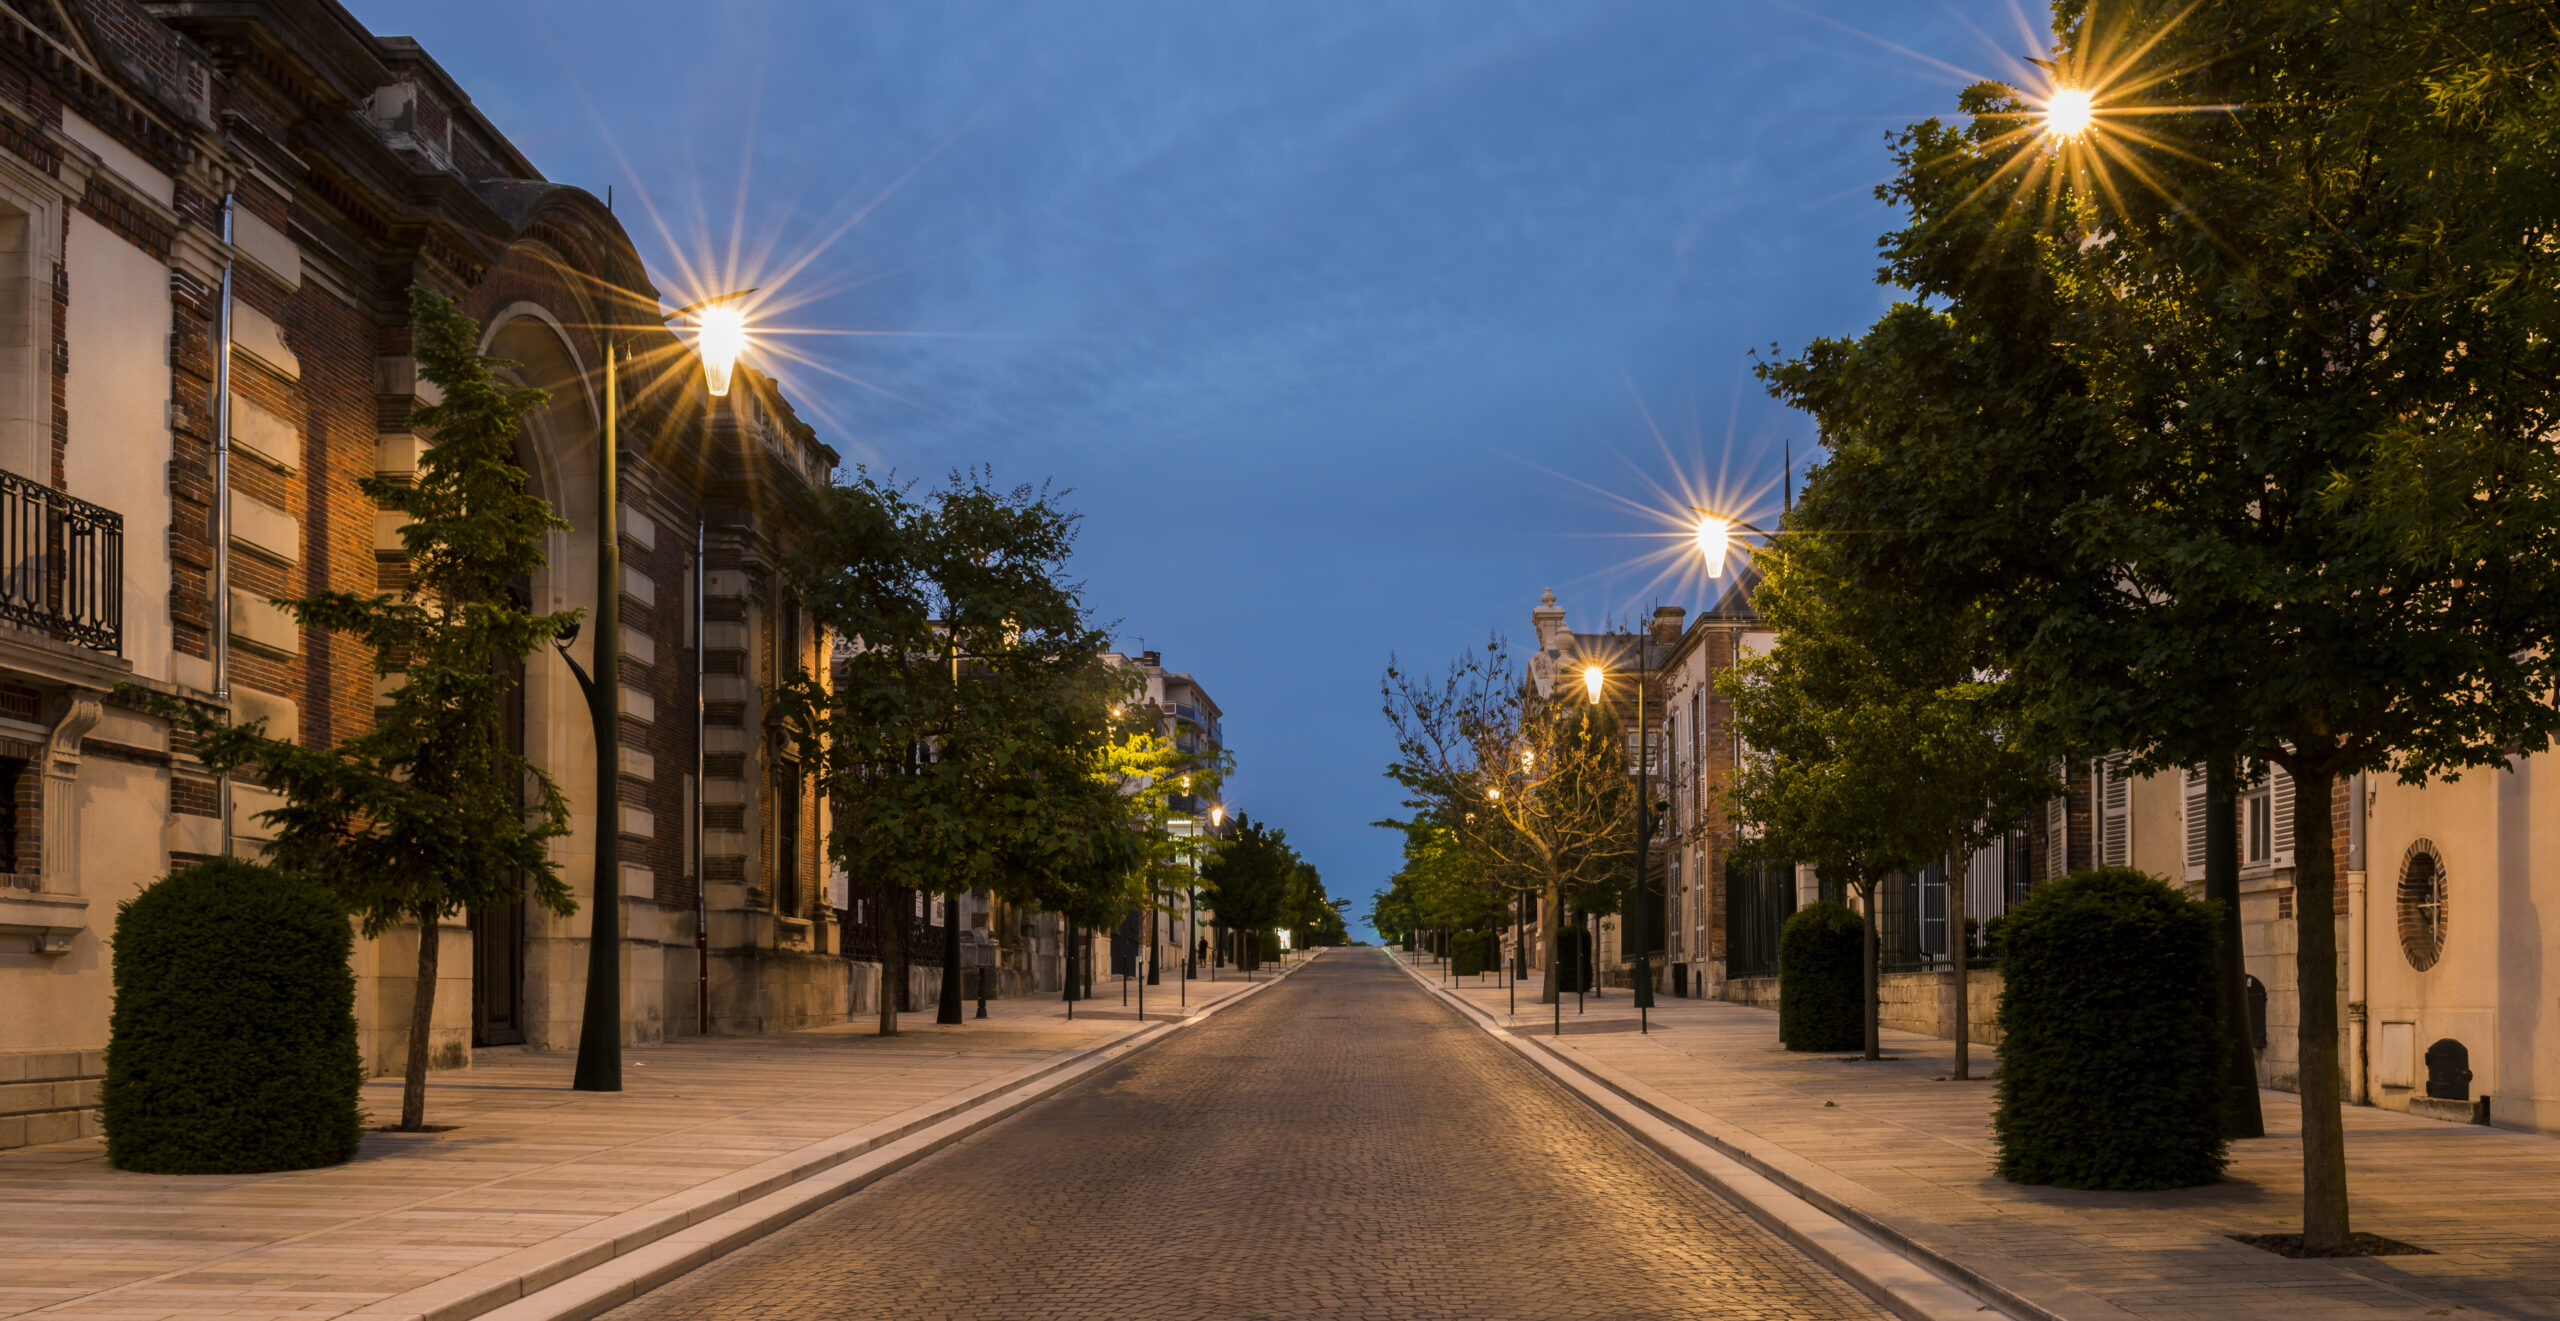 Avenue de Champagne with several Champagne houses along the road with strolling tourists in the evening in Epernay, France.